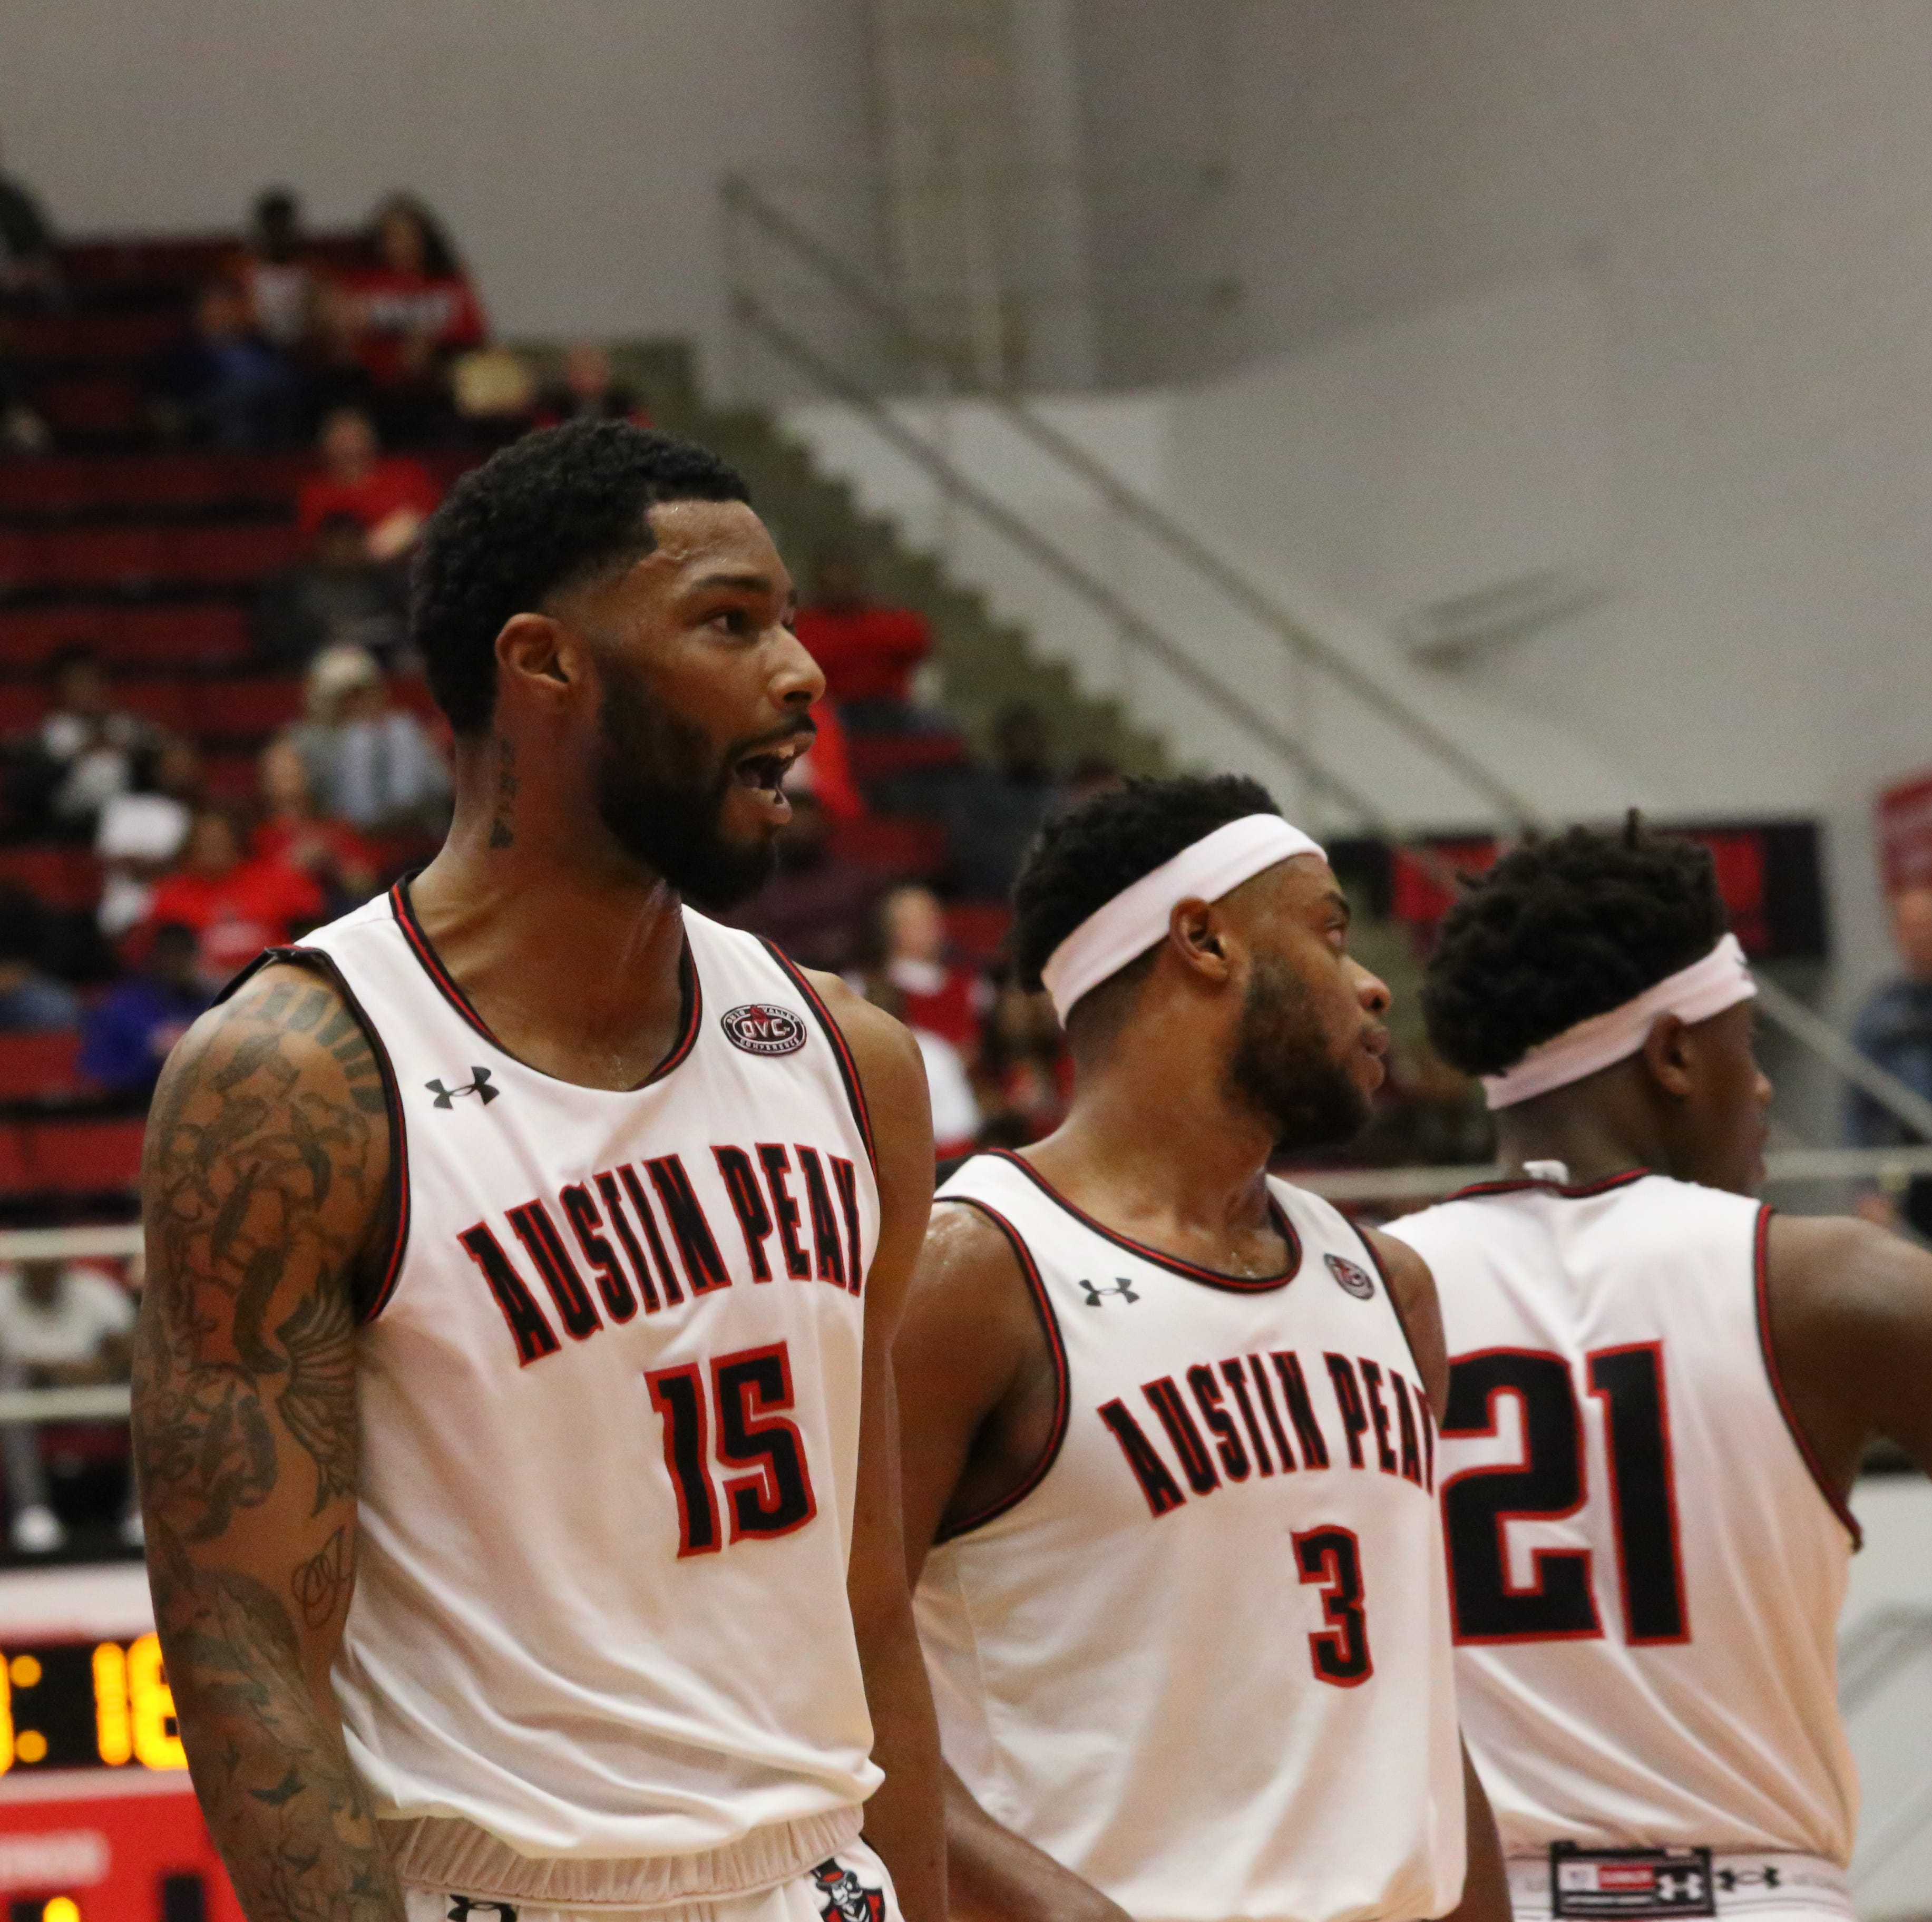 Former UT Vols basketball player Jabari McGhee finds home at Austin Peay on third college stop